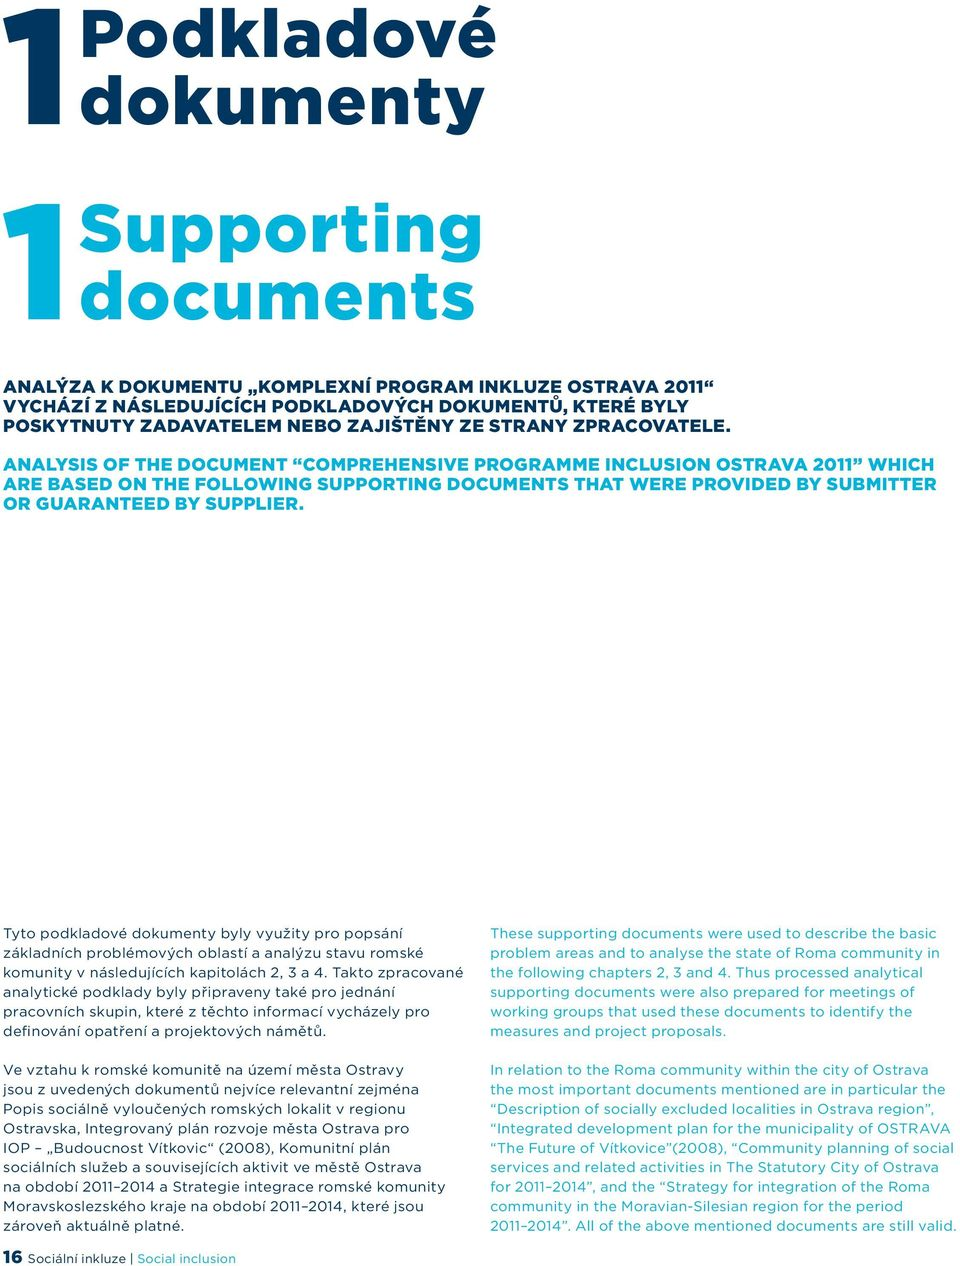 Analysis of the document Comprehensive programme inclusion OSTRAVA 2011 which are based on the following supporting documents that were provided by submitter or guaranteed by supplier.